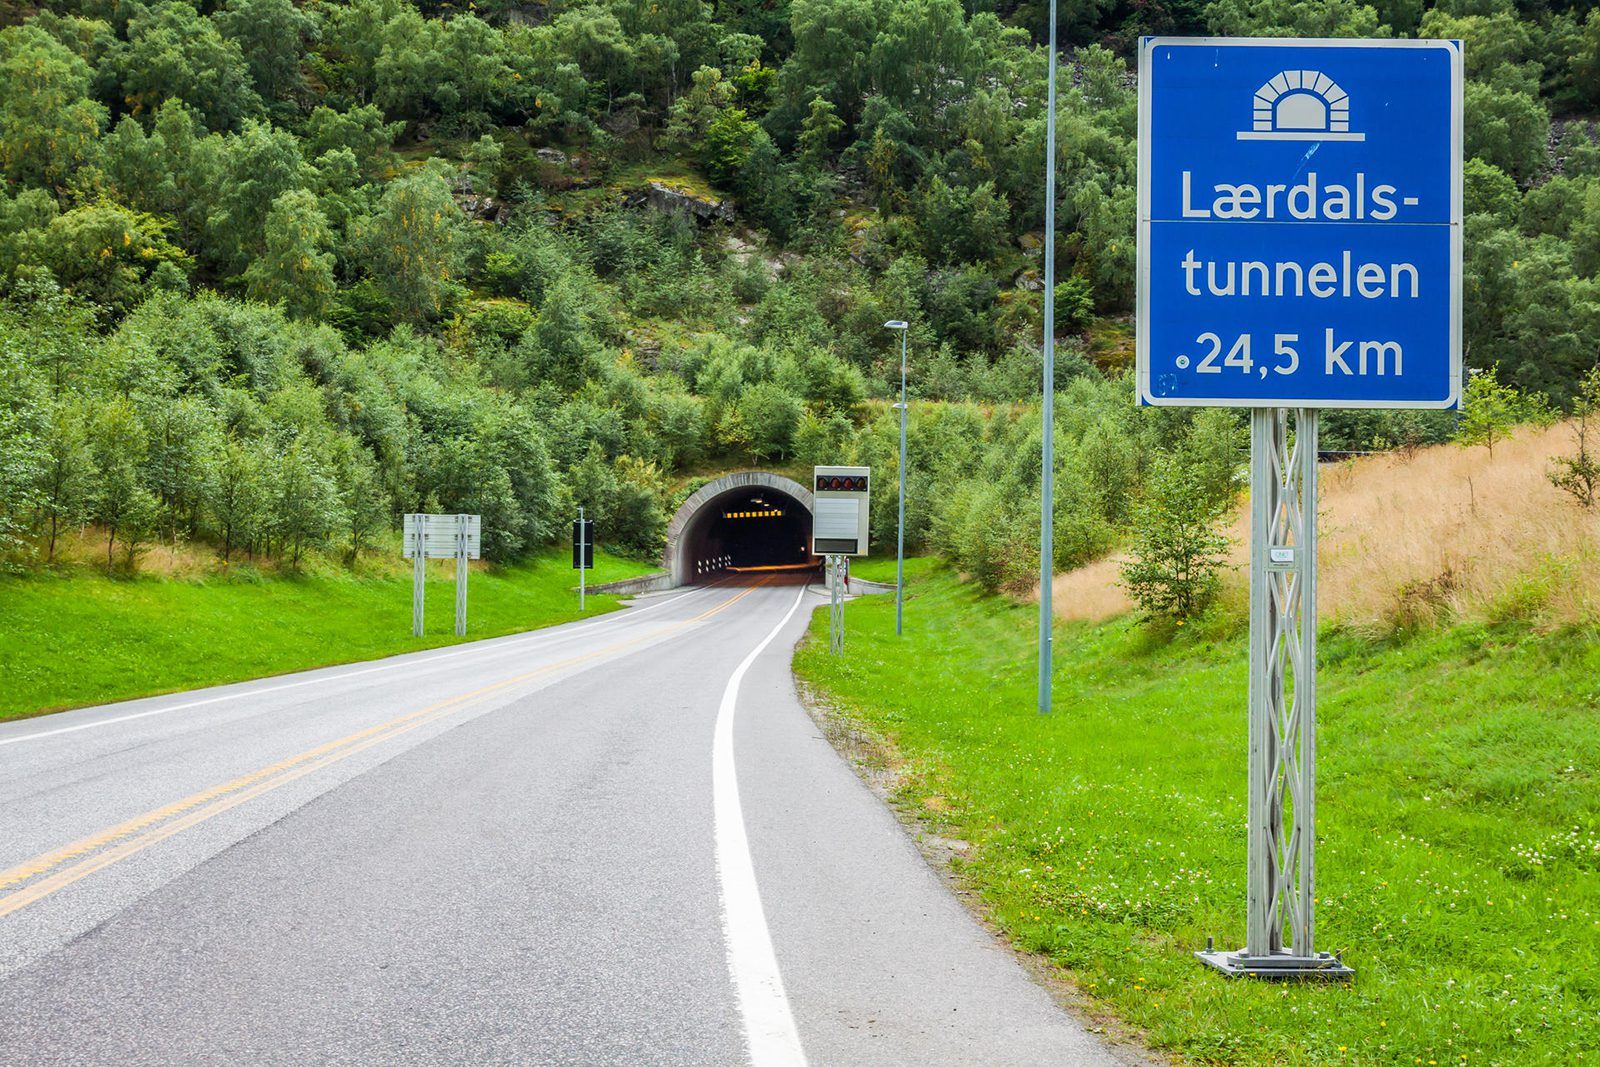 A photo of the entrance to Norway's 15-mile Lærdalstunnelen.